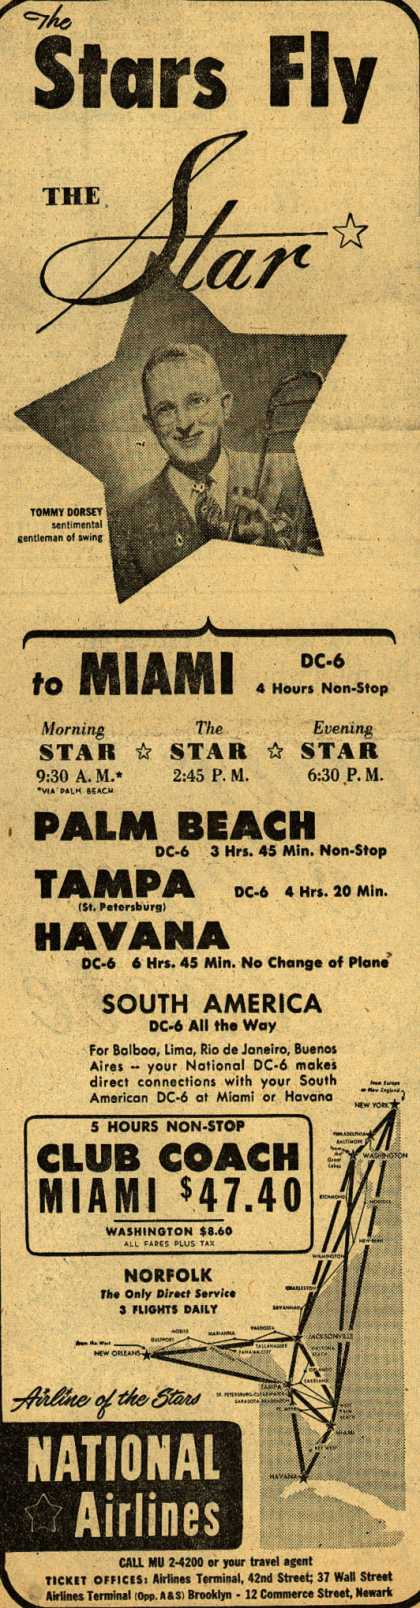 National Airline's various destinations – The Stars Fly THE Star (1950)